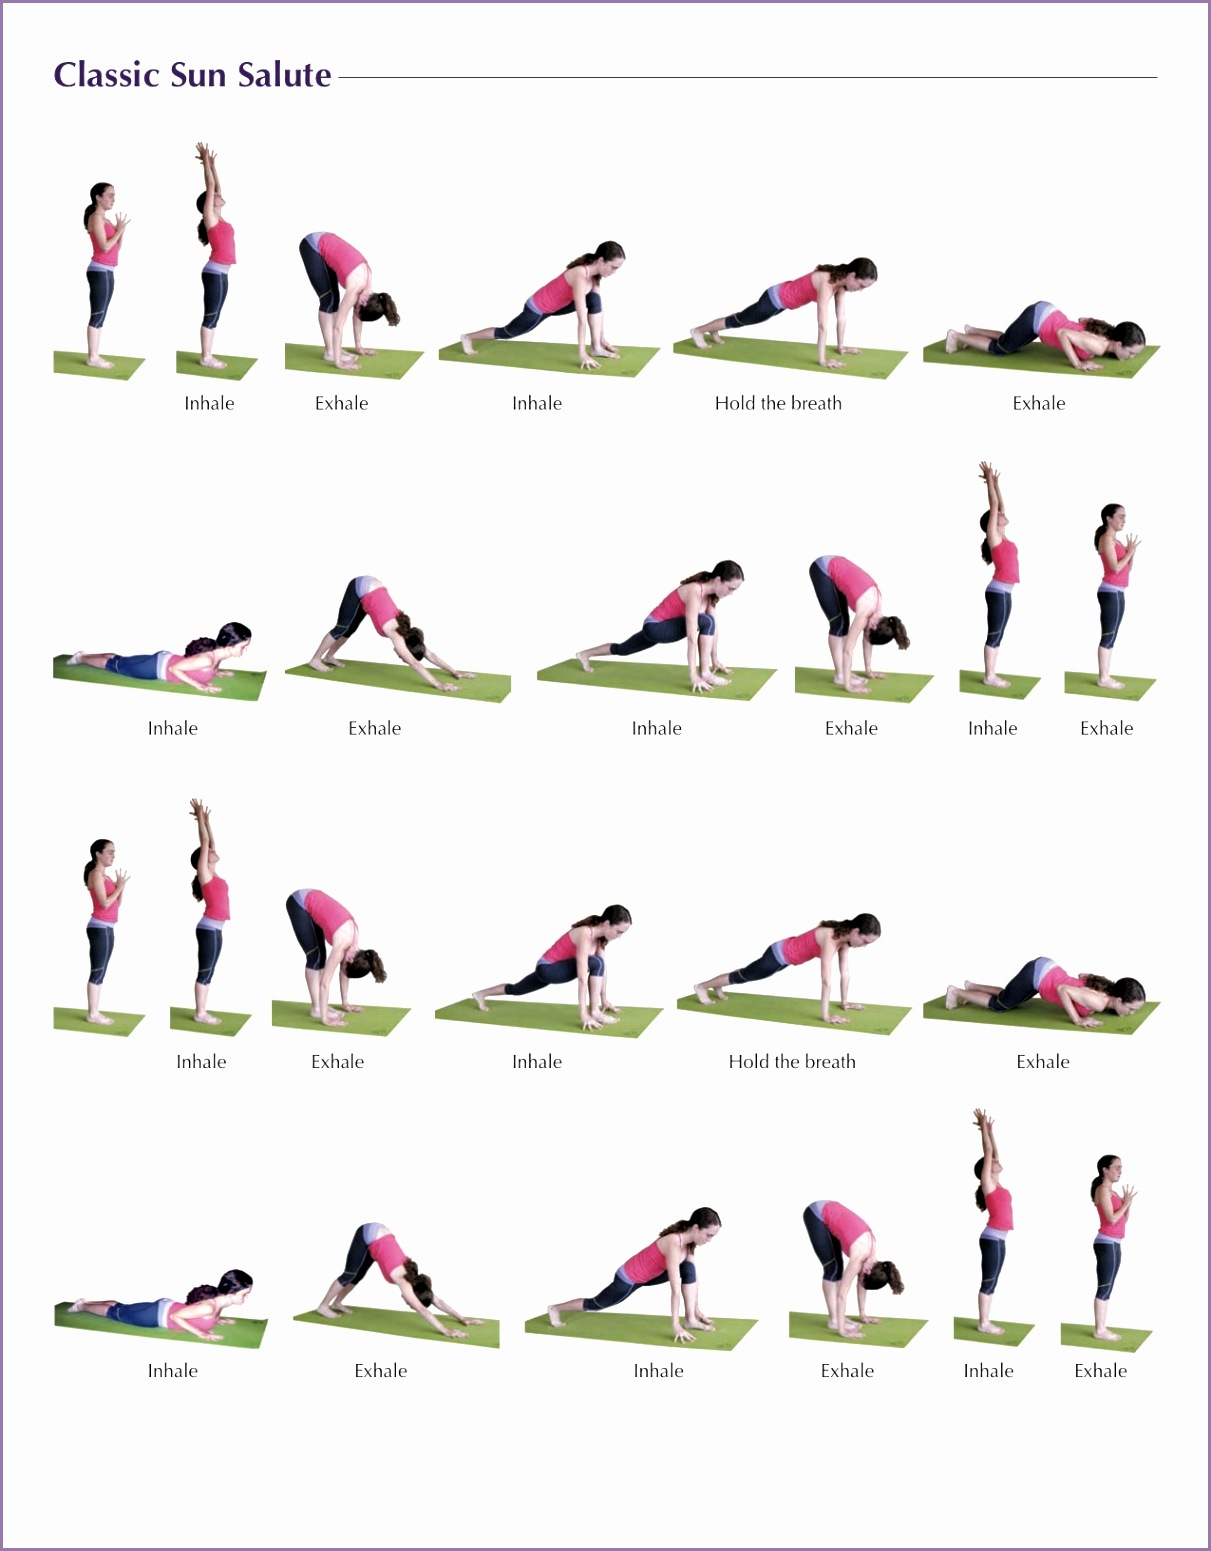 Classic Yoga Poses L1fm4q Luxury Classic Sun Salutation Yoga Pinterest